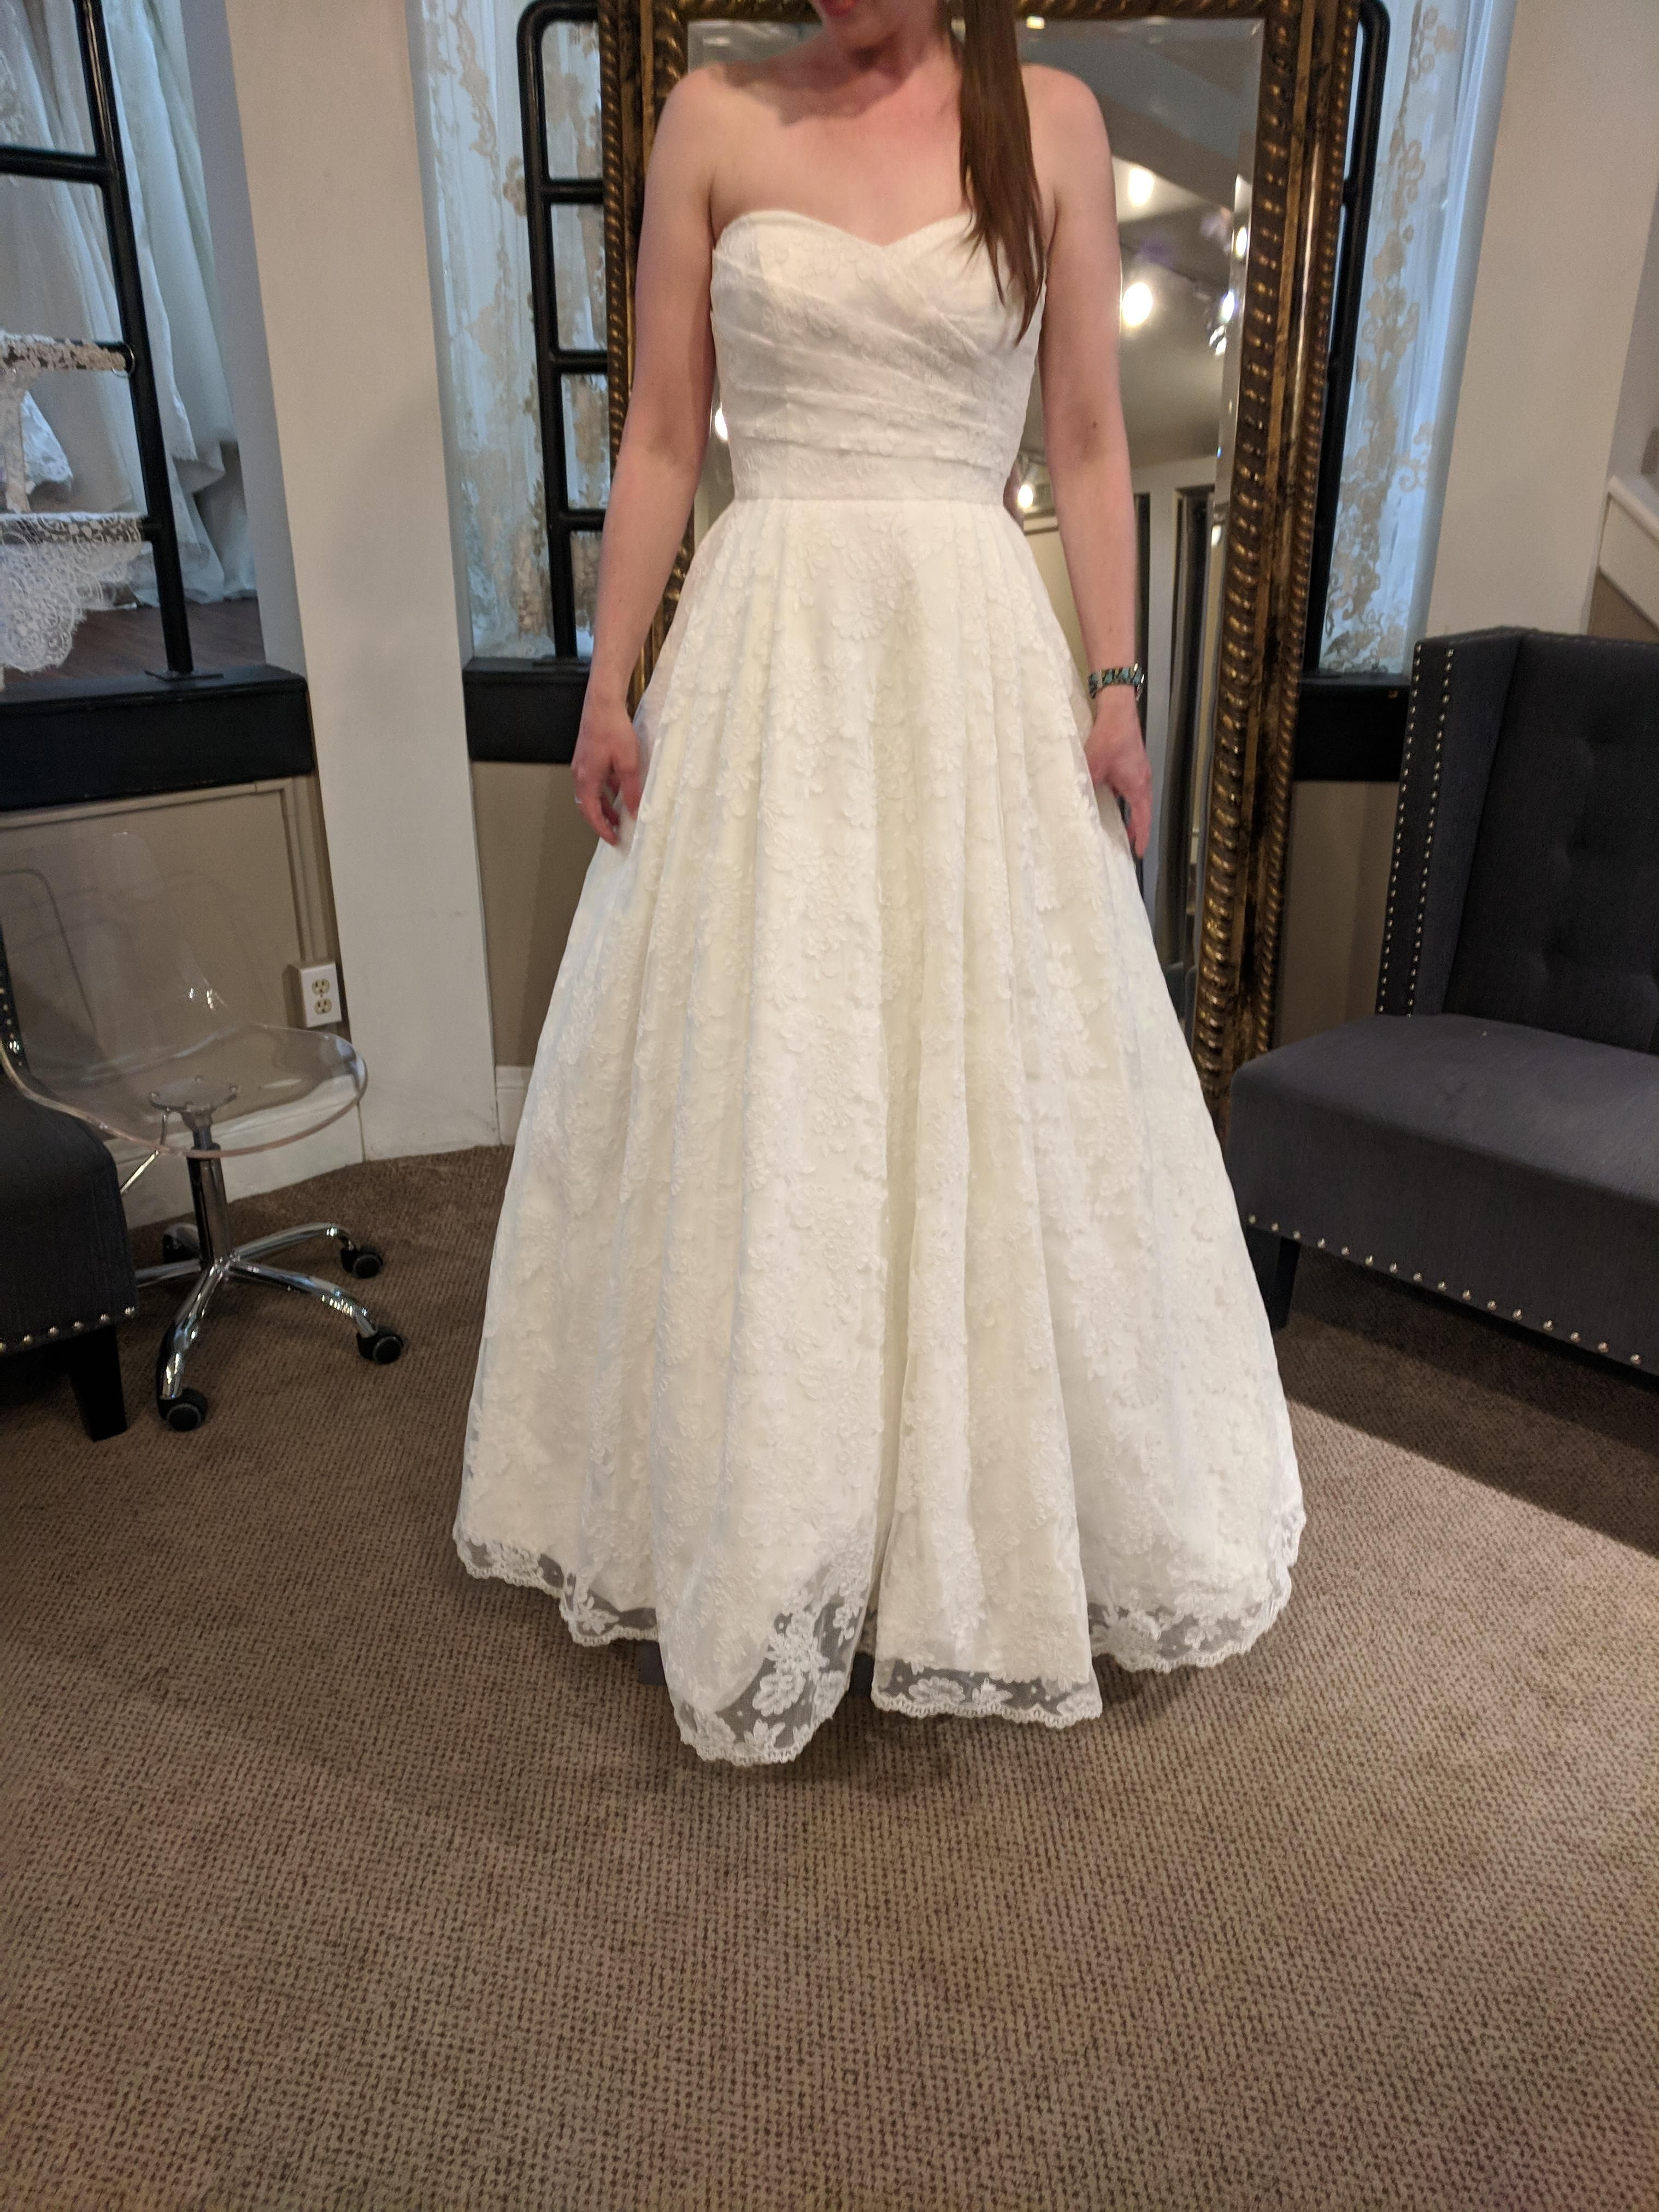 My dress came in and I am in LOVE!!! | Wedding Registry